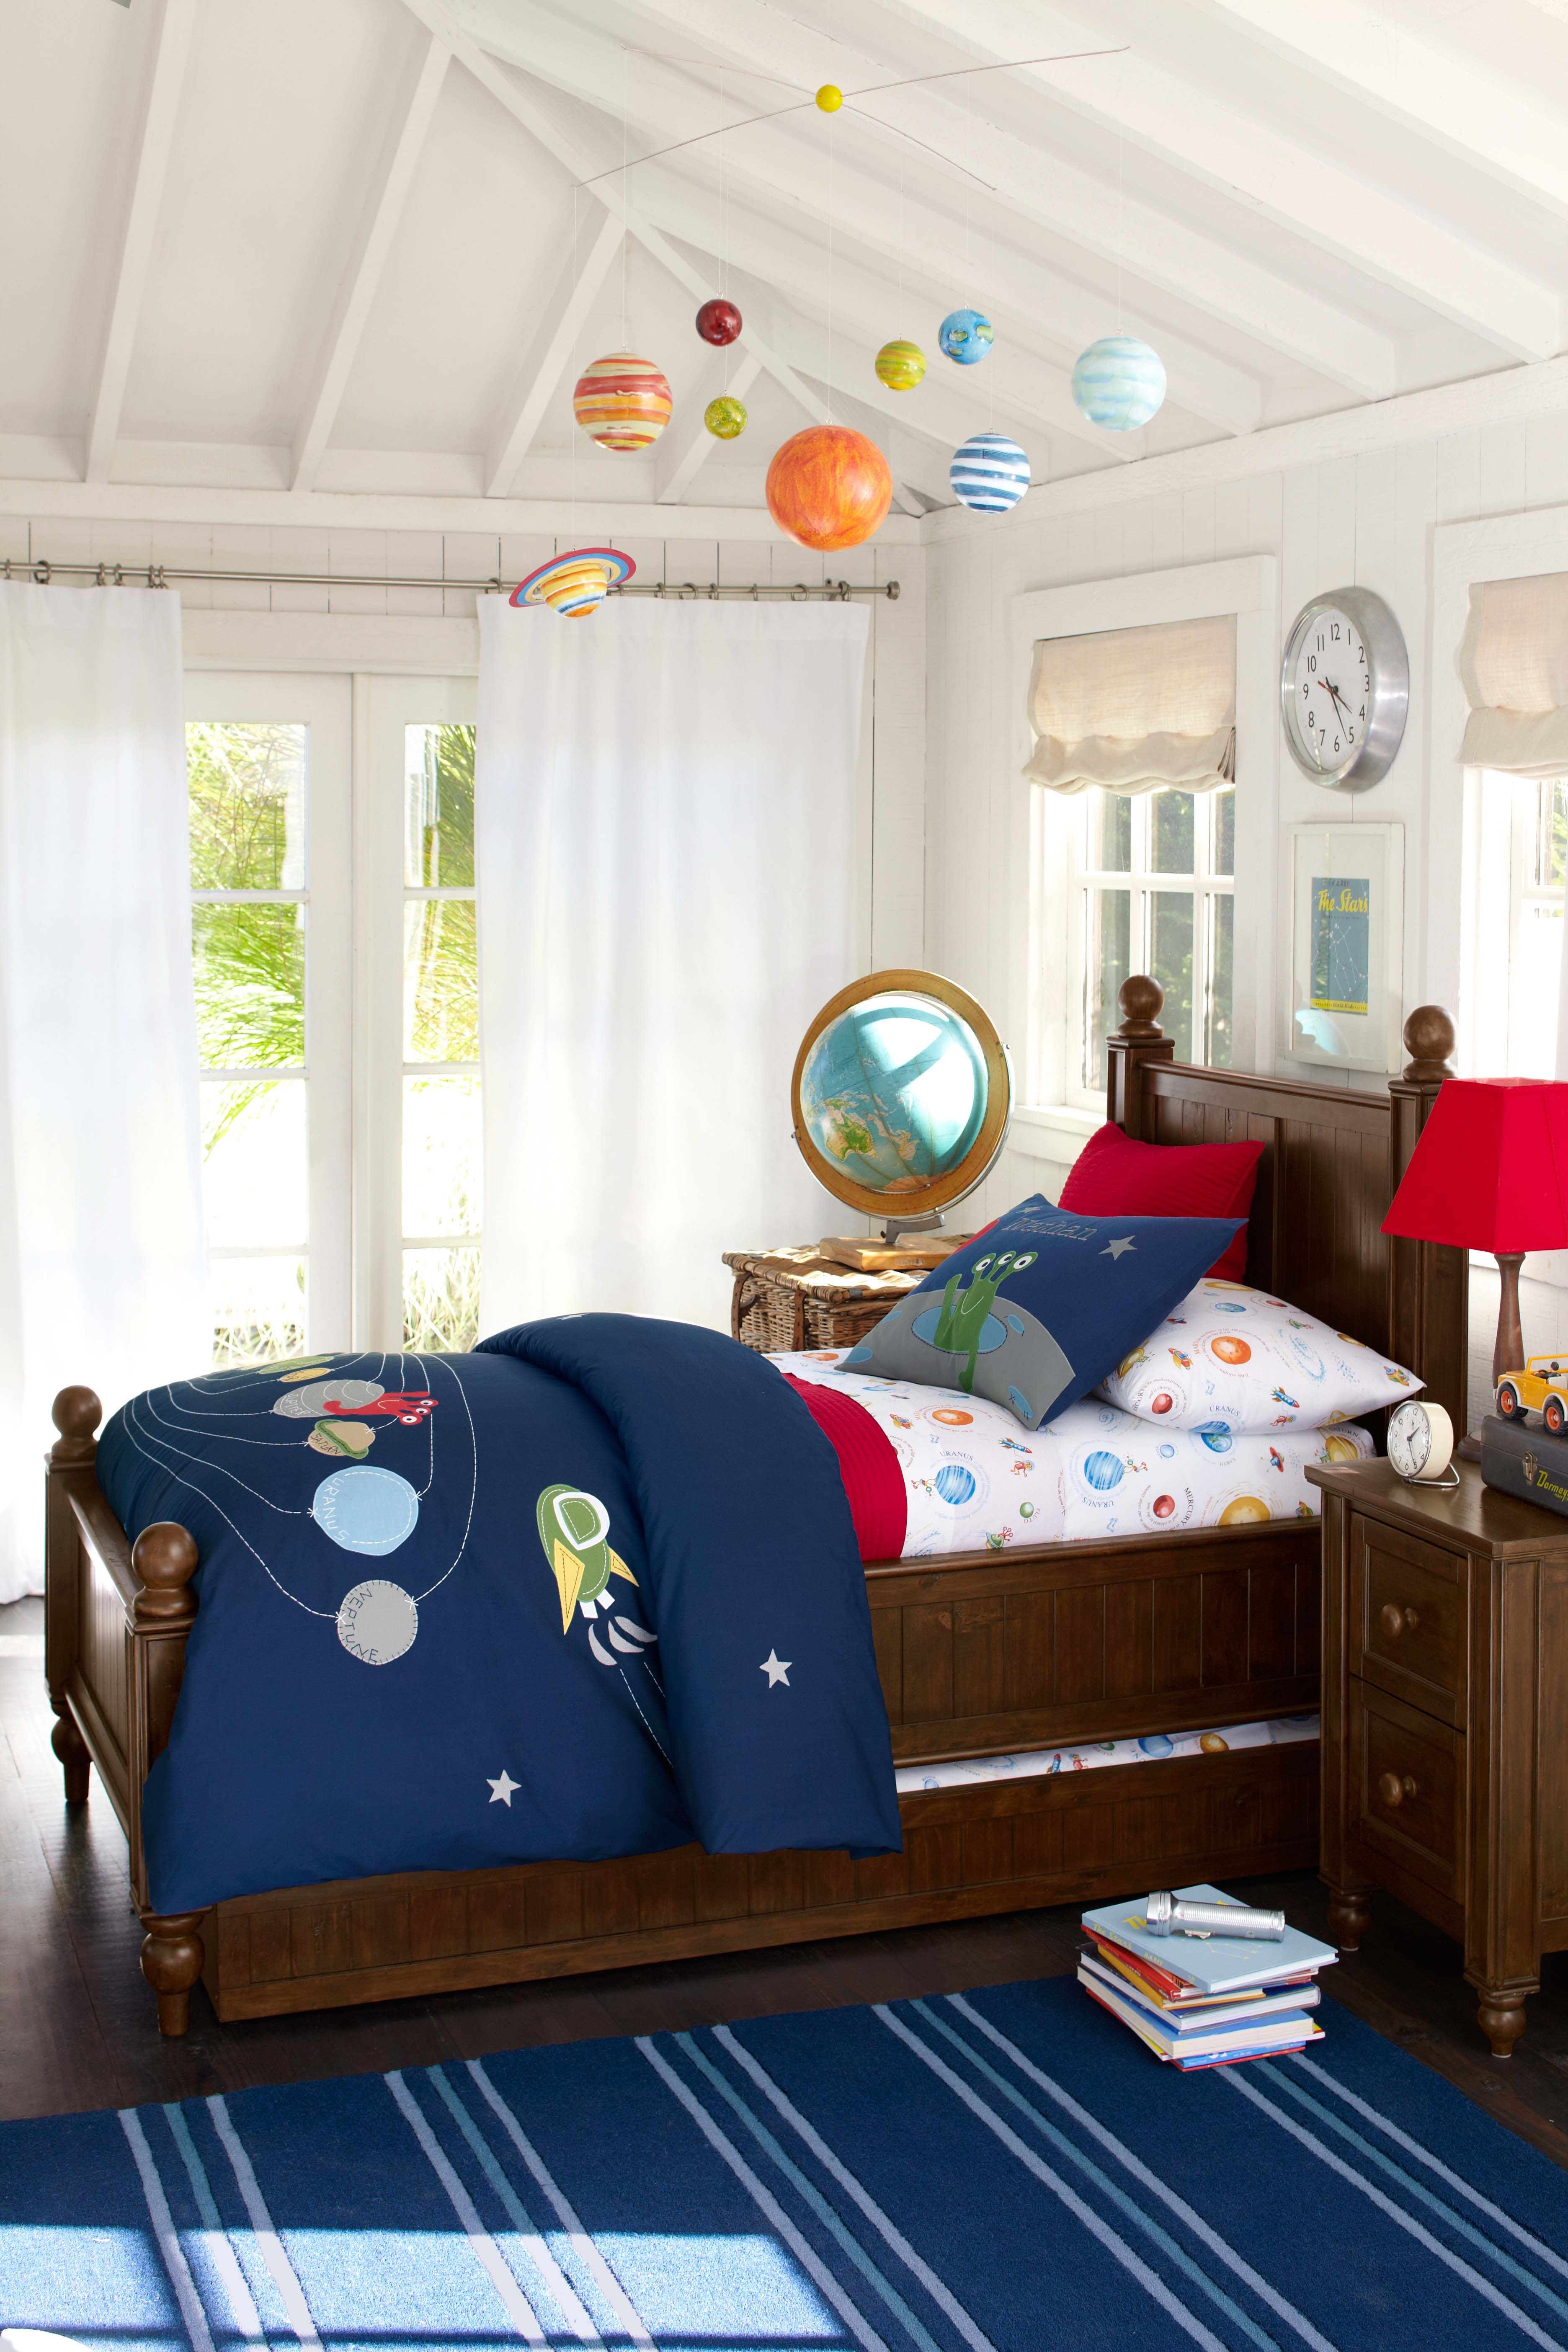 7 Fabulous Finds From Pottery Barn Kids&39; Spring Catalog ...